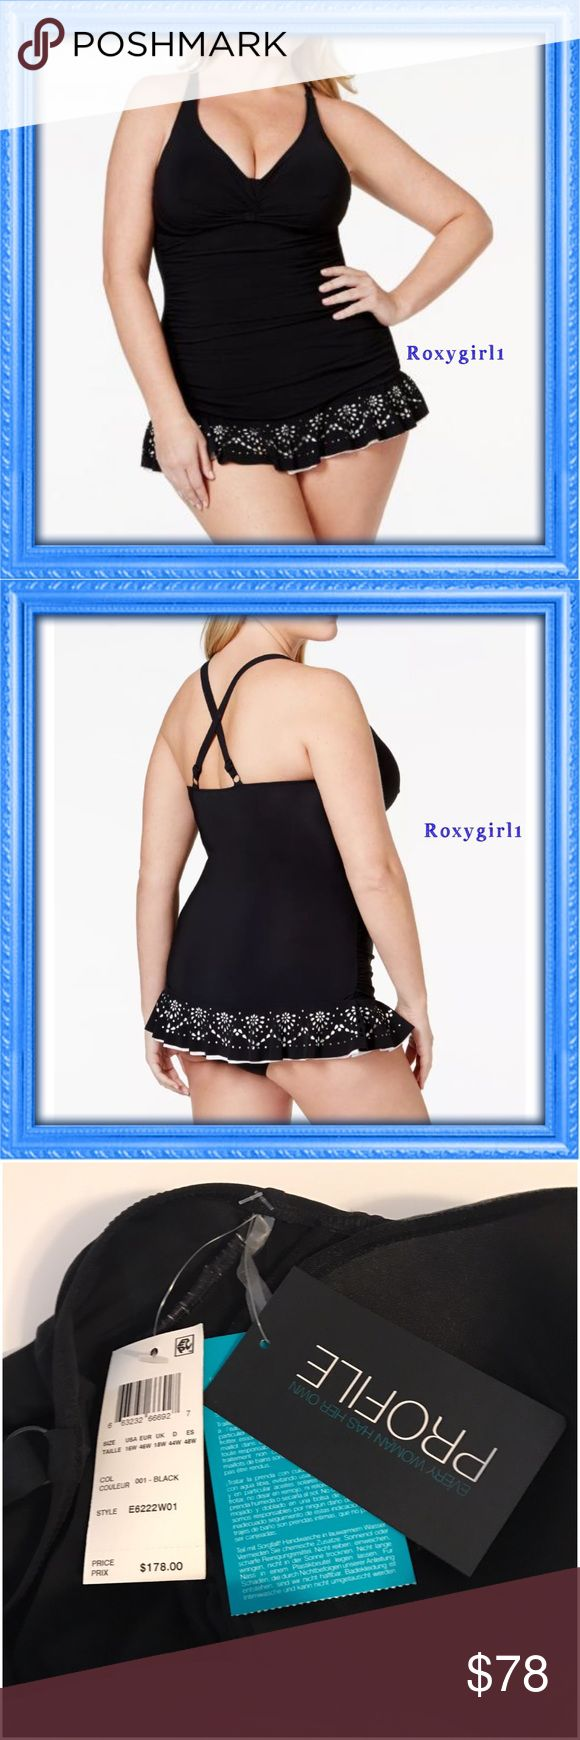 Profile Gottex Enchantment Laser Cut Swimsuit Profile Gottex Black Enchantment Laser Cut 1 Piece Swimsuit  So Flattering! New with Tags Attached  $178 + Tax  Profile by Gottex's chic 1 piece skirted swimsuit is finished with a ruffled crochet hem for a boho-inspired beach look!  V-neckline Adjustable over-the-shoulder straps cross at back Non-removable soft cups Ruched across front Skirted bottom with attached brief Ruffled hem with laser-cut crochet overlay Full bottom coverage…